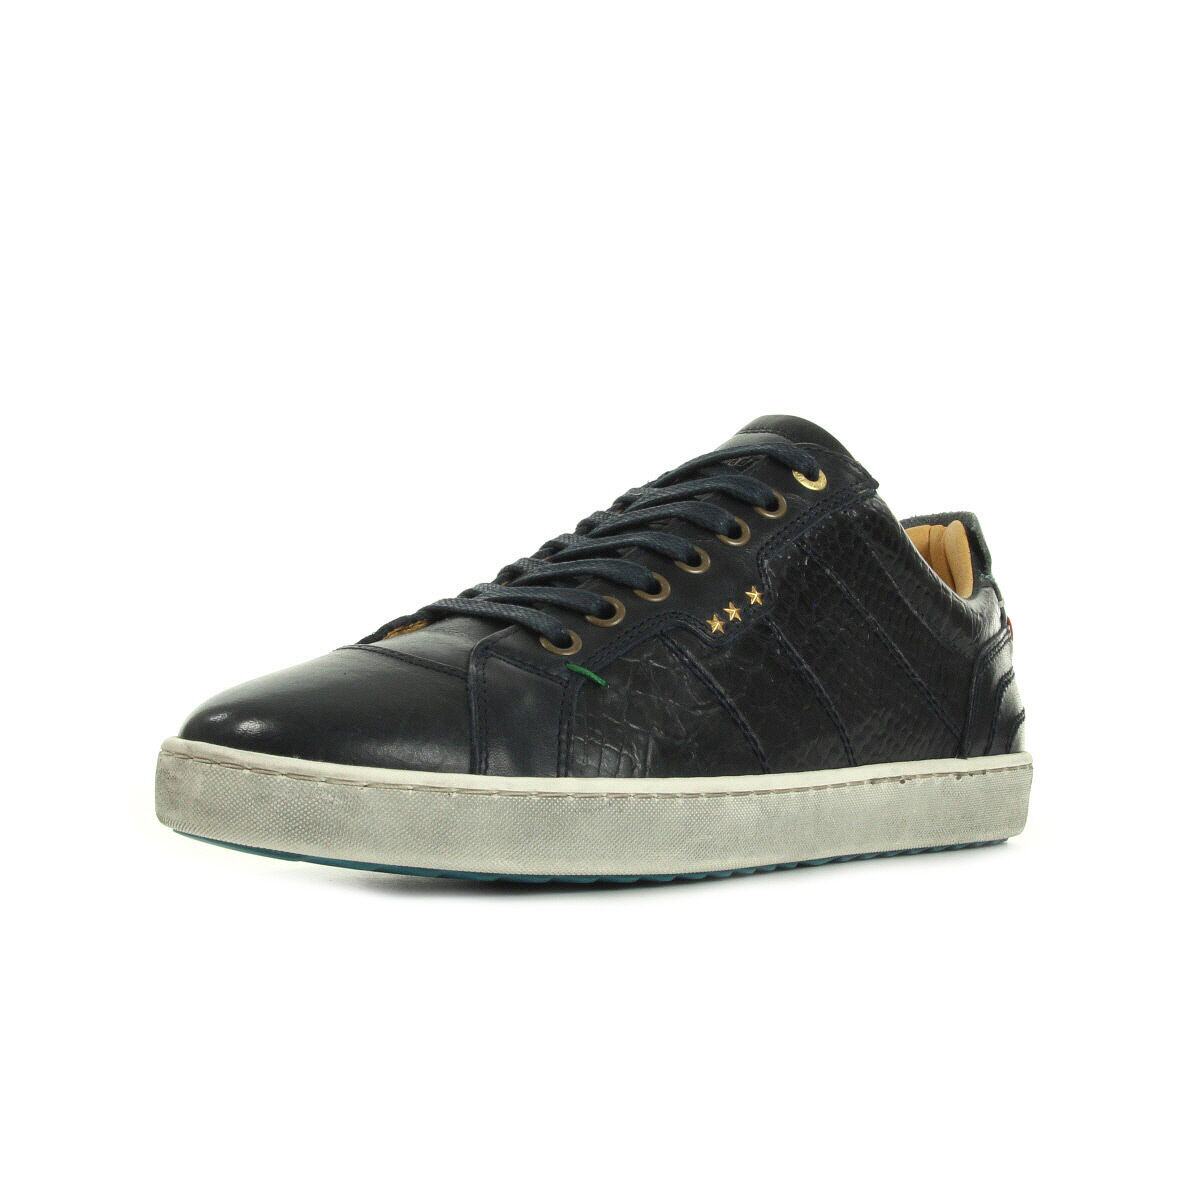 Men's Pantofola d'oro Canaverse Dress azul Trainers